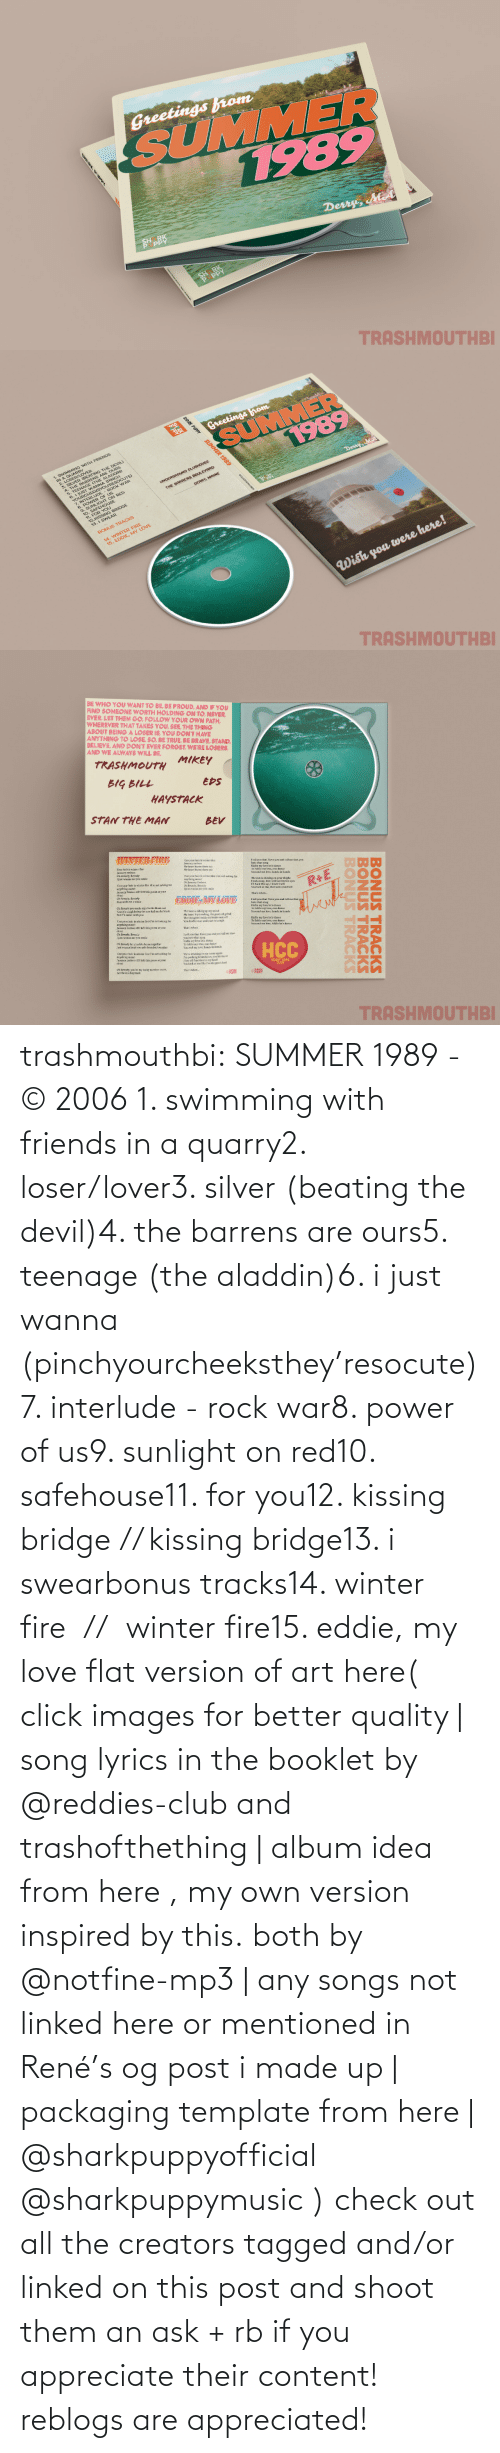 template: trashmouthbi: SUMMER 1989 - © 2006 1. swimming with friends in a quarry2. loser/lover3. silver (beating the devil)4. the barrens are ours5. teenage (the aladdin)6. i just wanna (pinchyourcheeksthey'resocute)7. interlude - rock war8. power of us9. sunlight on red10. safehouse11. for you12. kissing bridge // kissing bridge13. i swearbonus tracks14. winter fire  //  winter fire15. eddie, my love flat version of art here( click images for better quality | song lyrics in the booklet by @reddies-club​ and trashofthething | album idea from here , my own version inspired by this. both by @notfine-mp3​ | any songs not linked here or mentioned in René's og post i made up | packaging template from here | @sharkpuppyofficial​ @sharkpuppymusic​ ) check out all the creators tagged and/or linked on this post and shoot them an ask + rb if you appreciate their content! reblogs are appreciated!